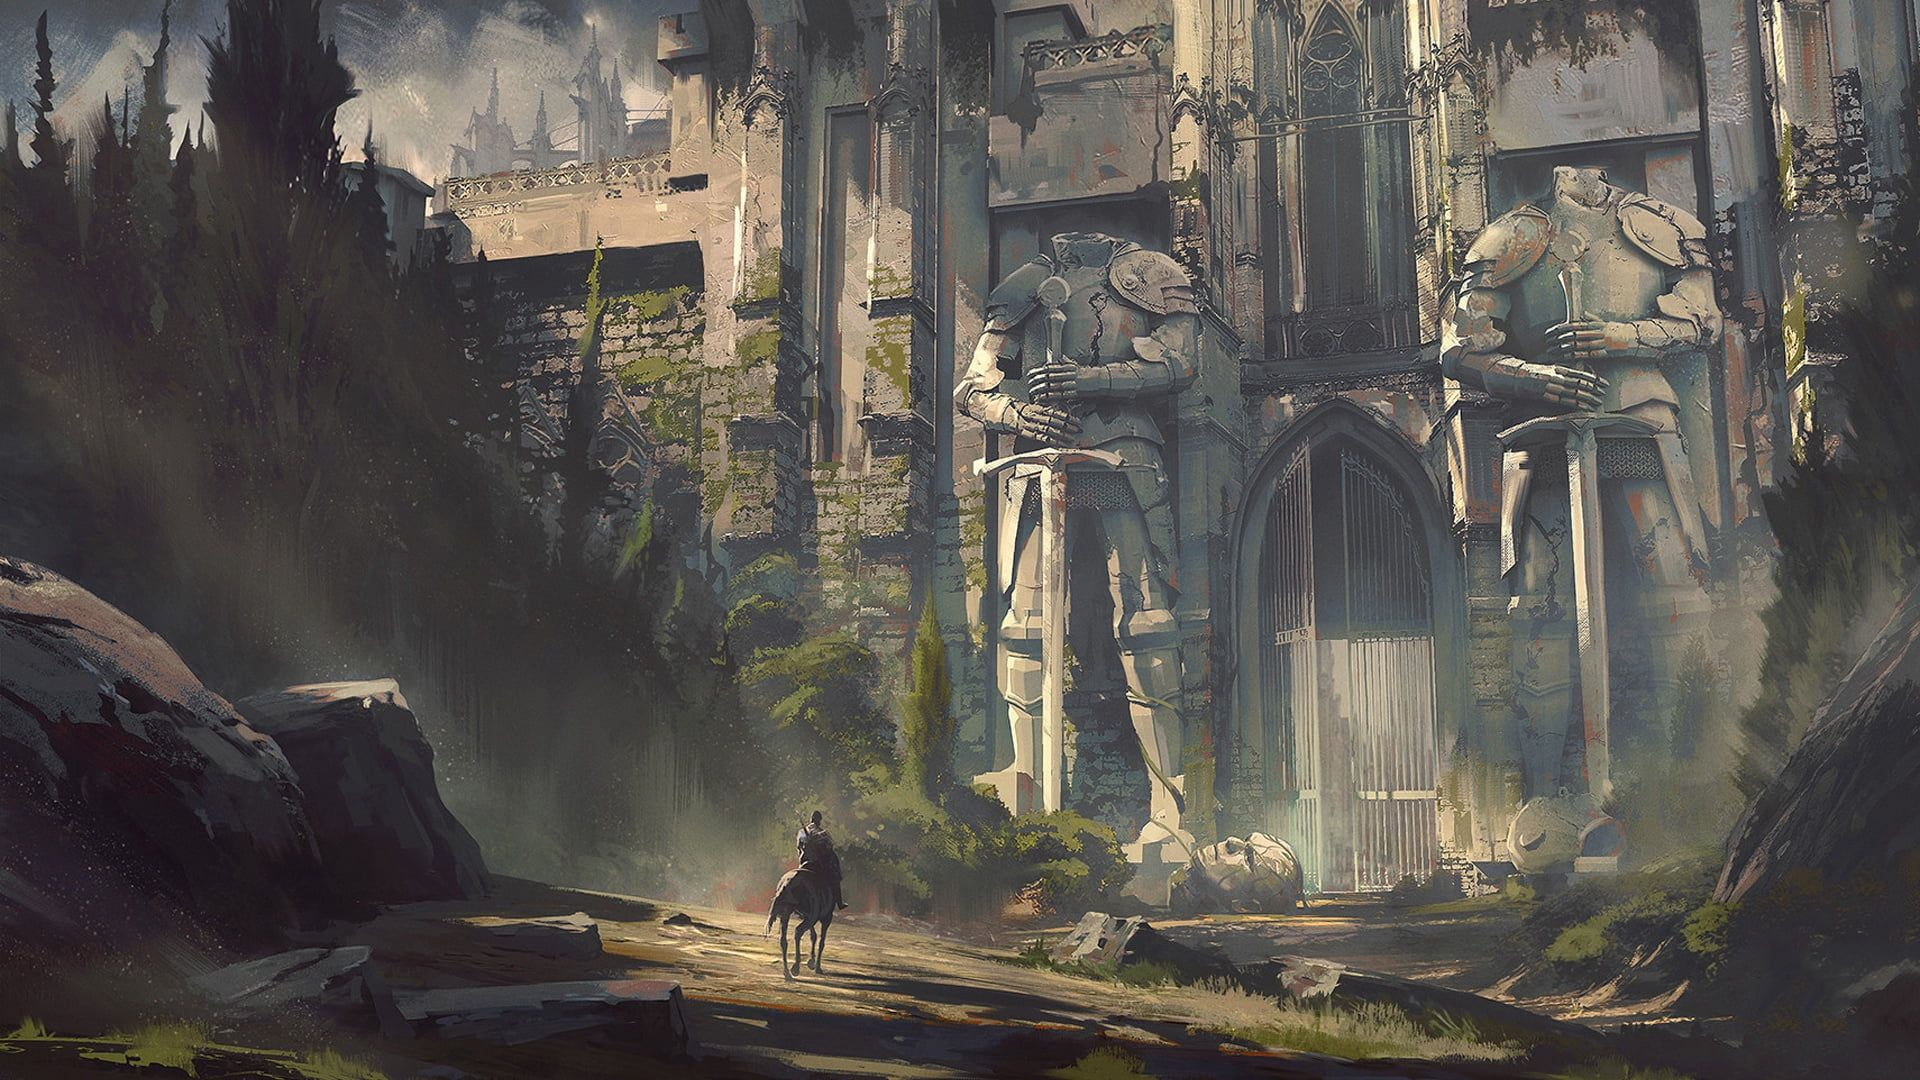 Dungeons And Dragons Jedd Chevrier Dungeons And Dragons Curse Of Strahd Tabletop Role Playing Game In The Fan In 2020 Fantasy Art Digital Art Fantasy Fantasy Landscape